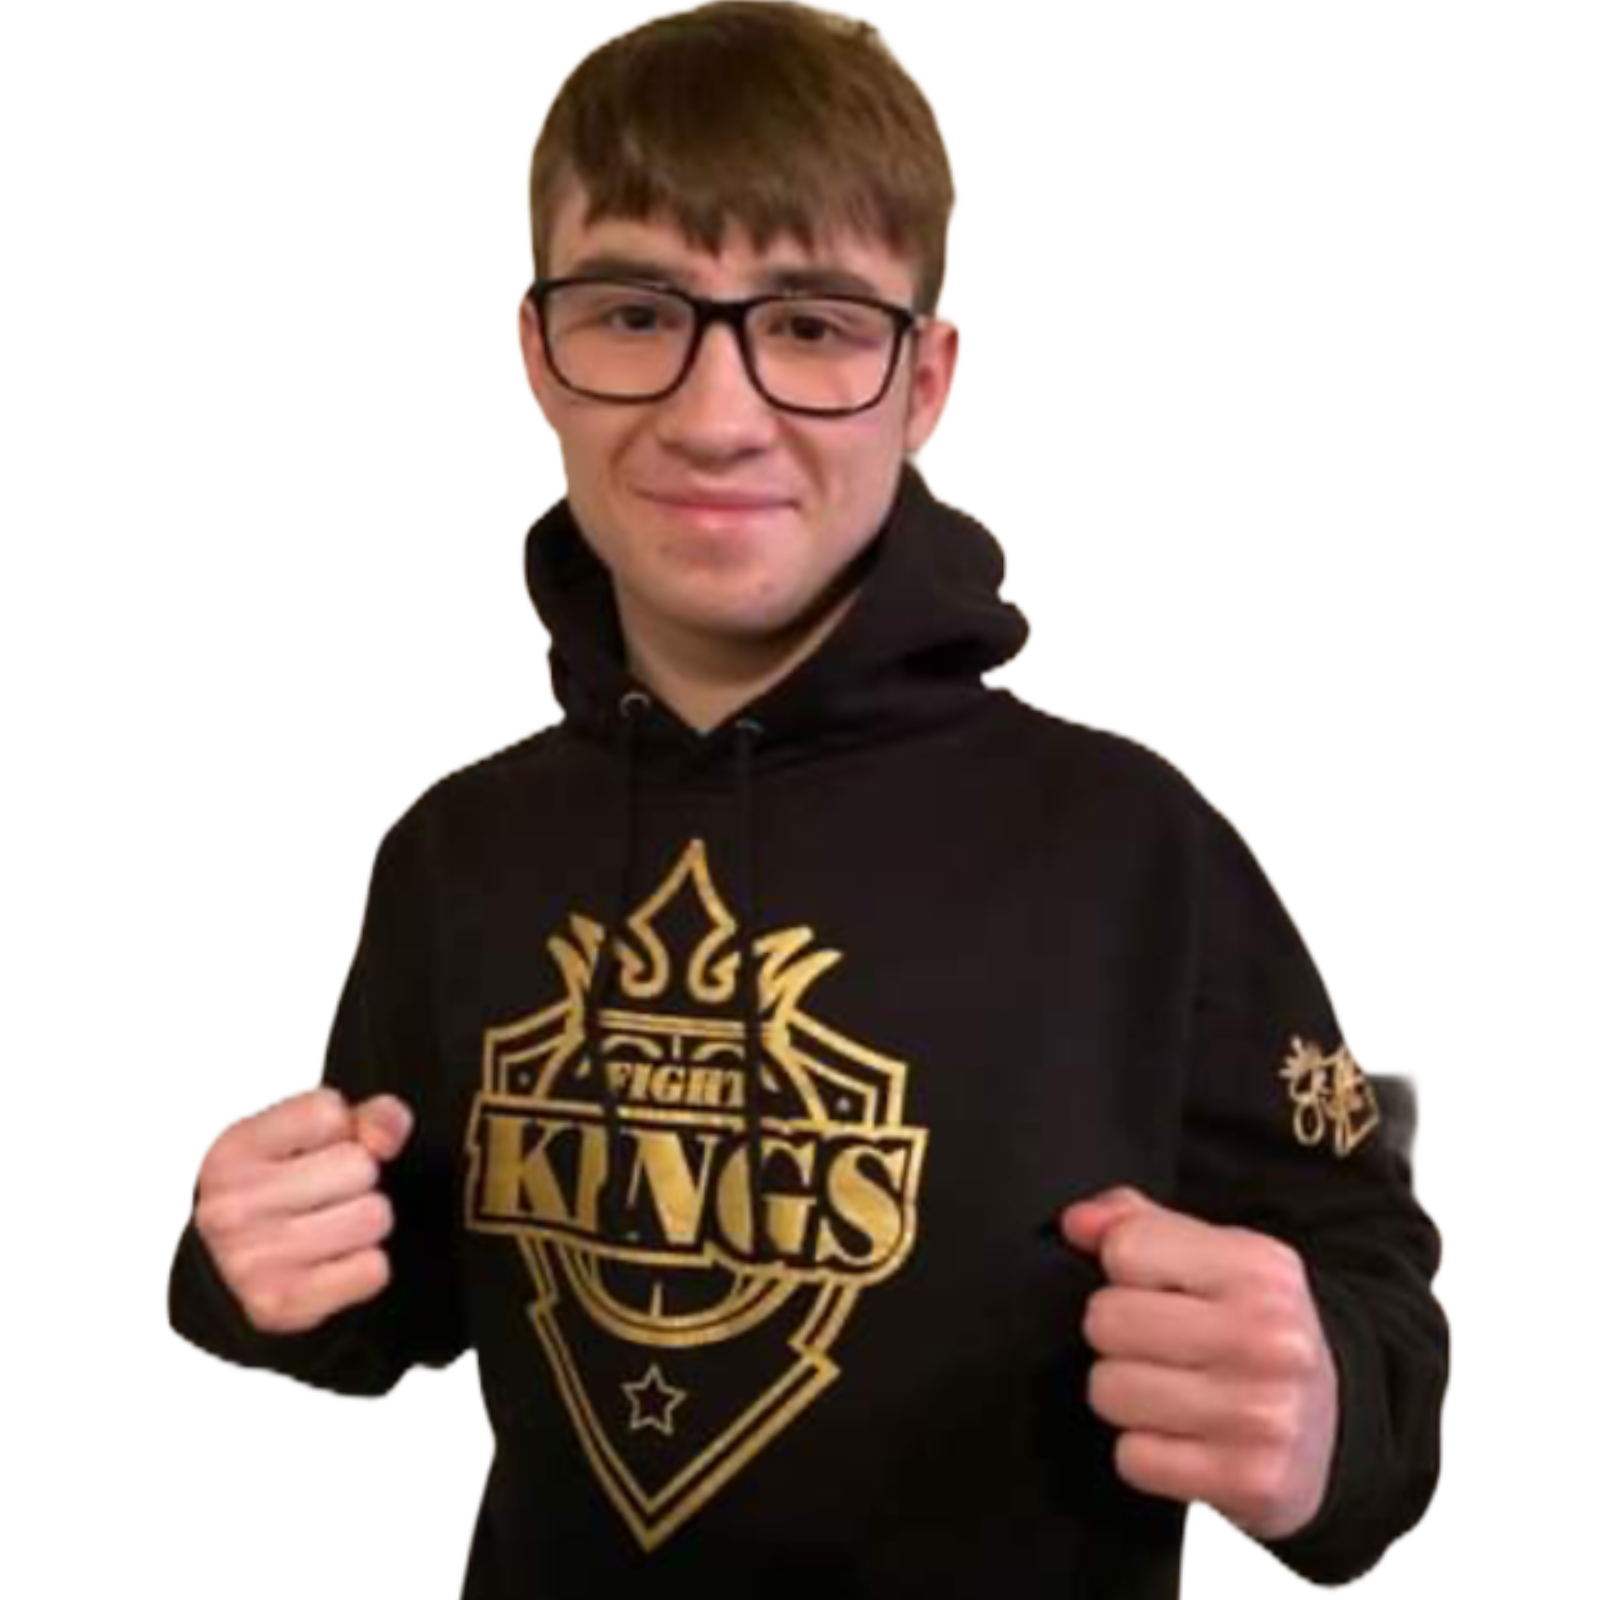 Fight Kings Hoodie